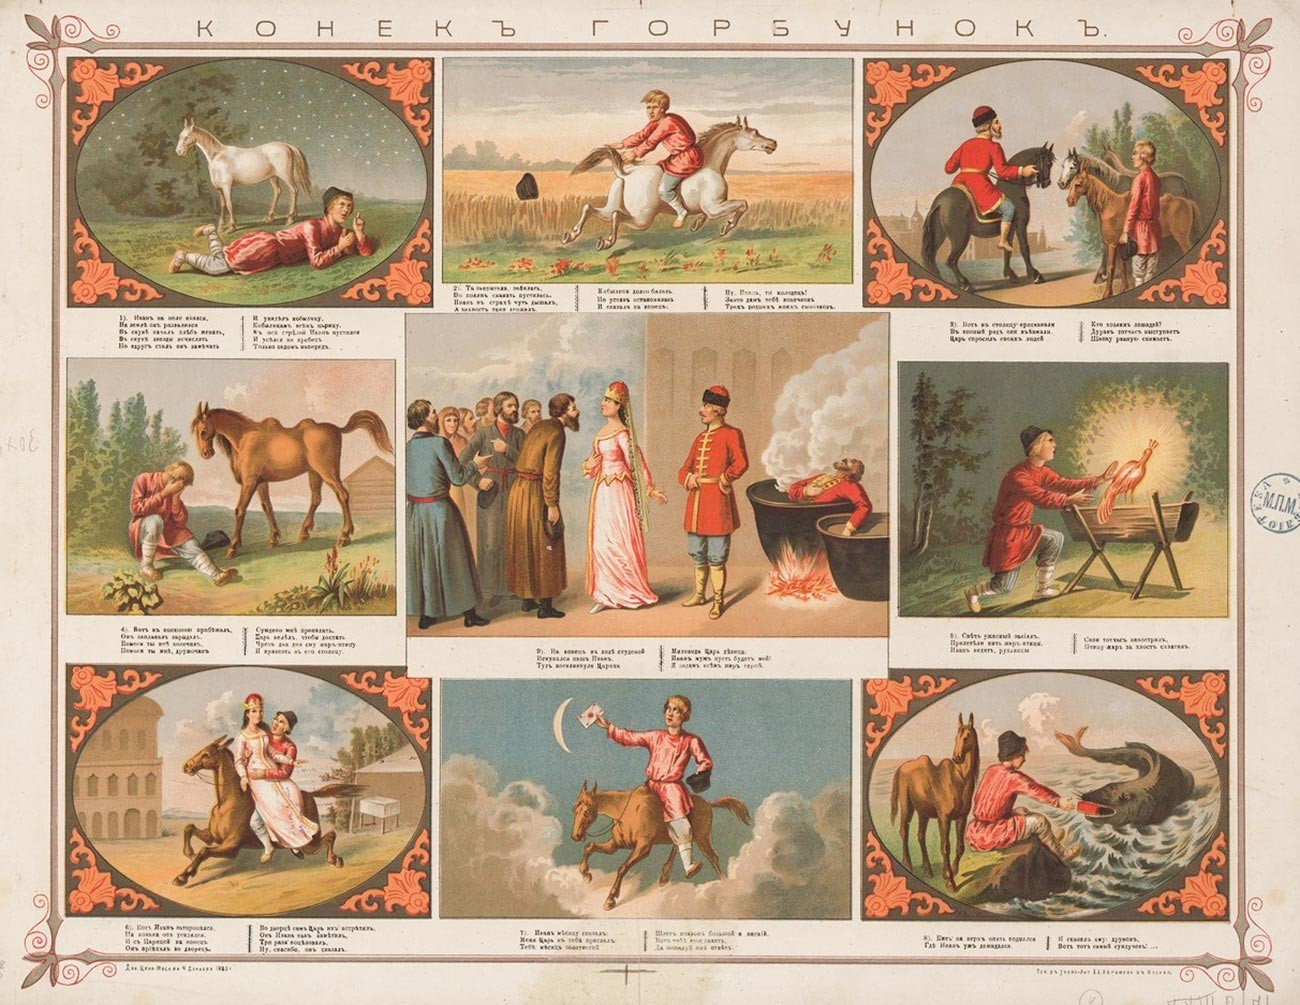 Lubok 'The Little Humpbacked Horse', 19th century.